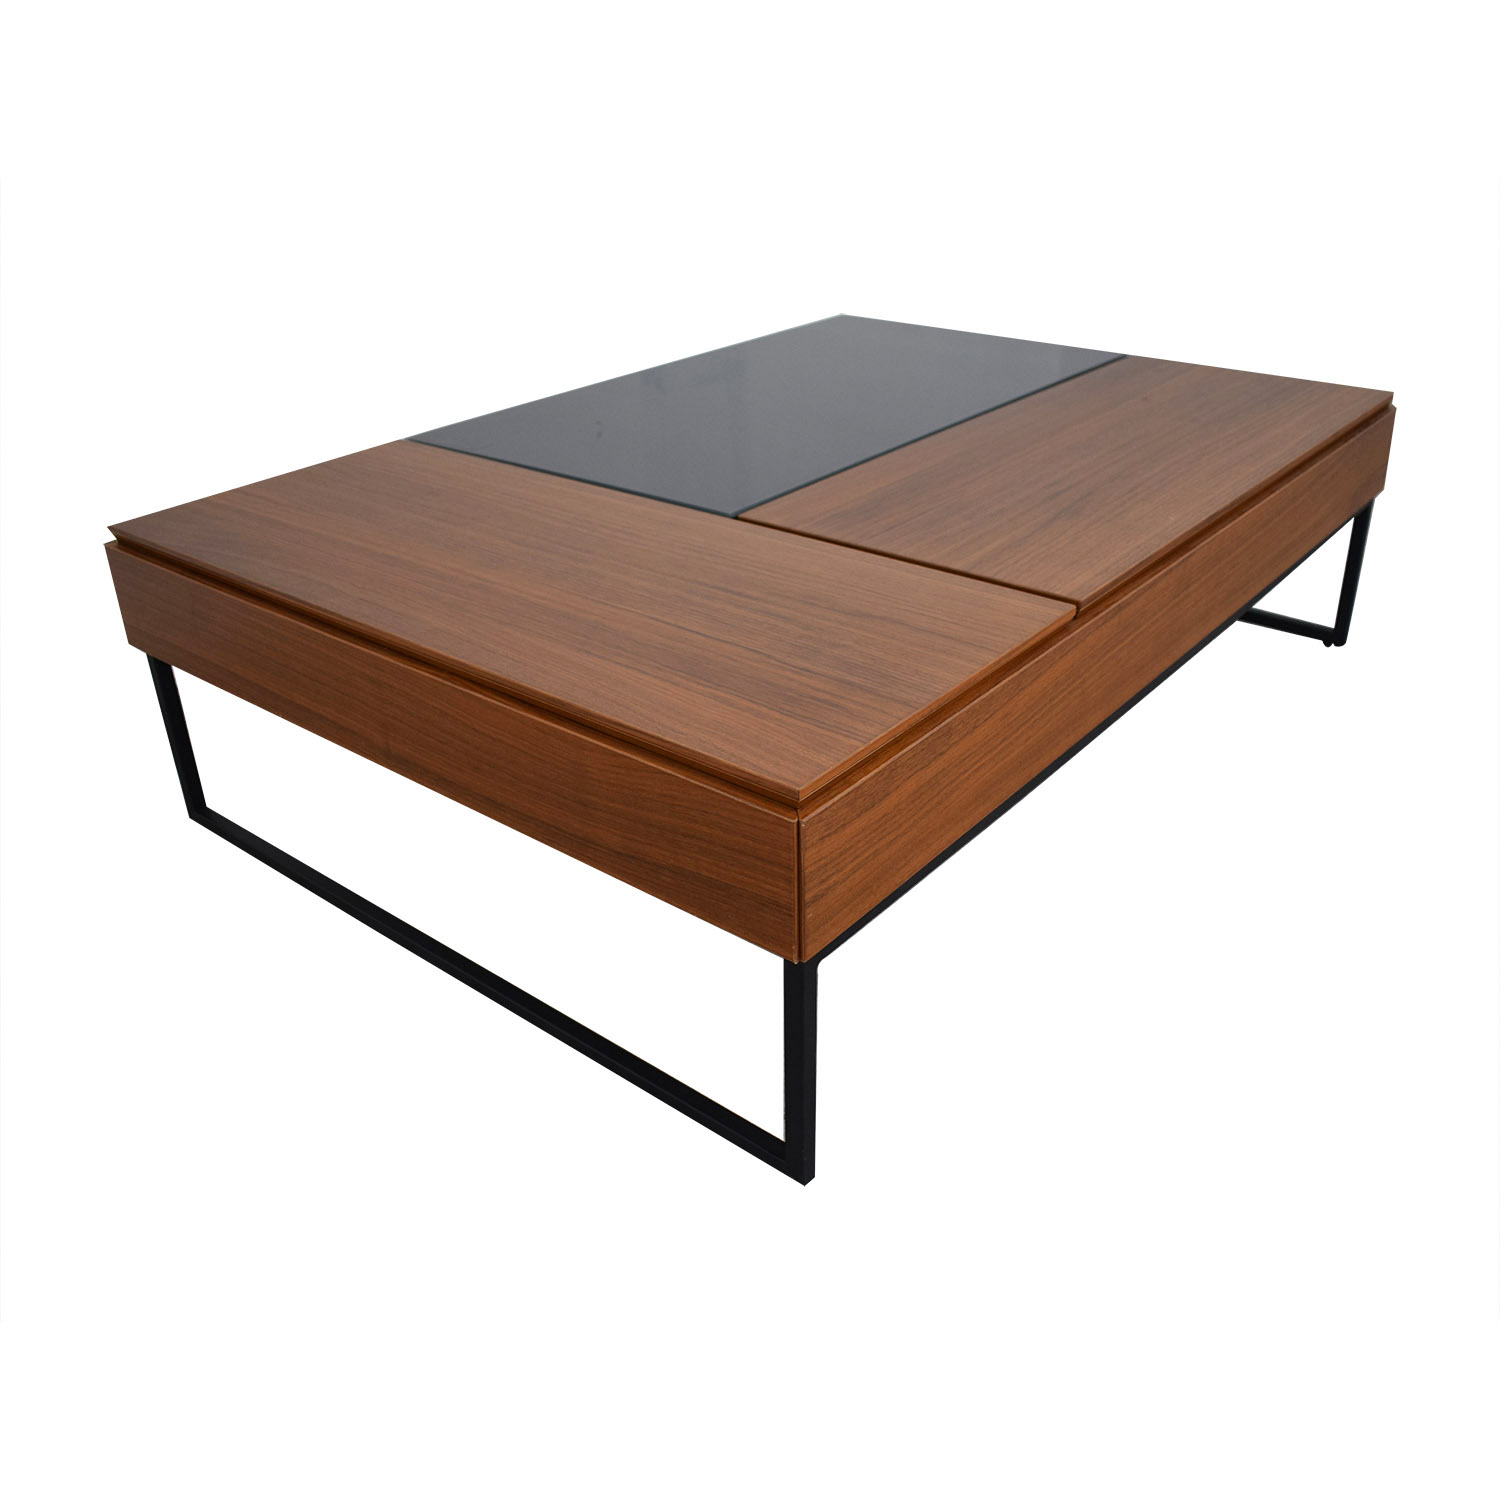 BoConcept BoConcept Chiva Functional Coffee Table with Storage nyc